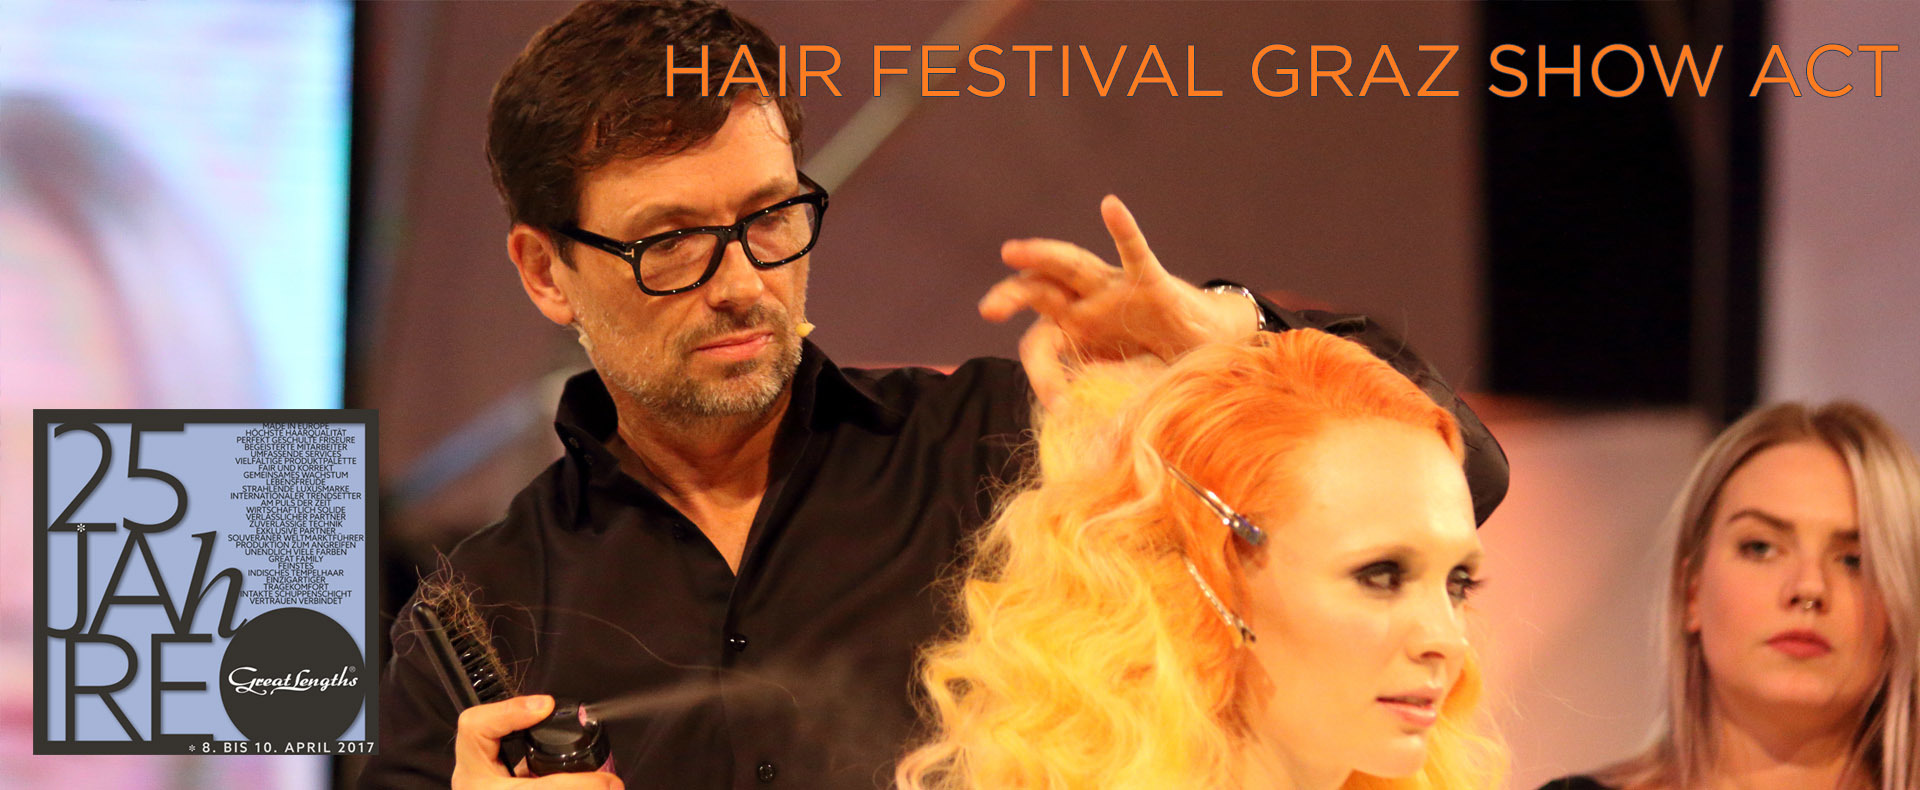 Das HAIR Festival Graz: Show Act (© Great Lengths)